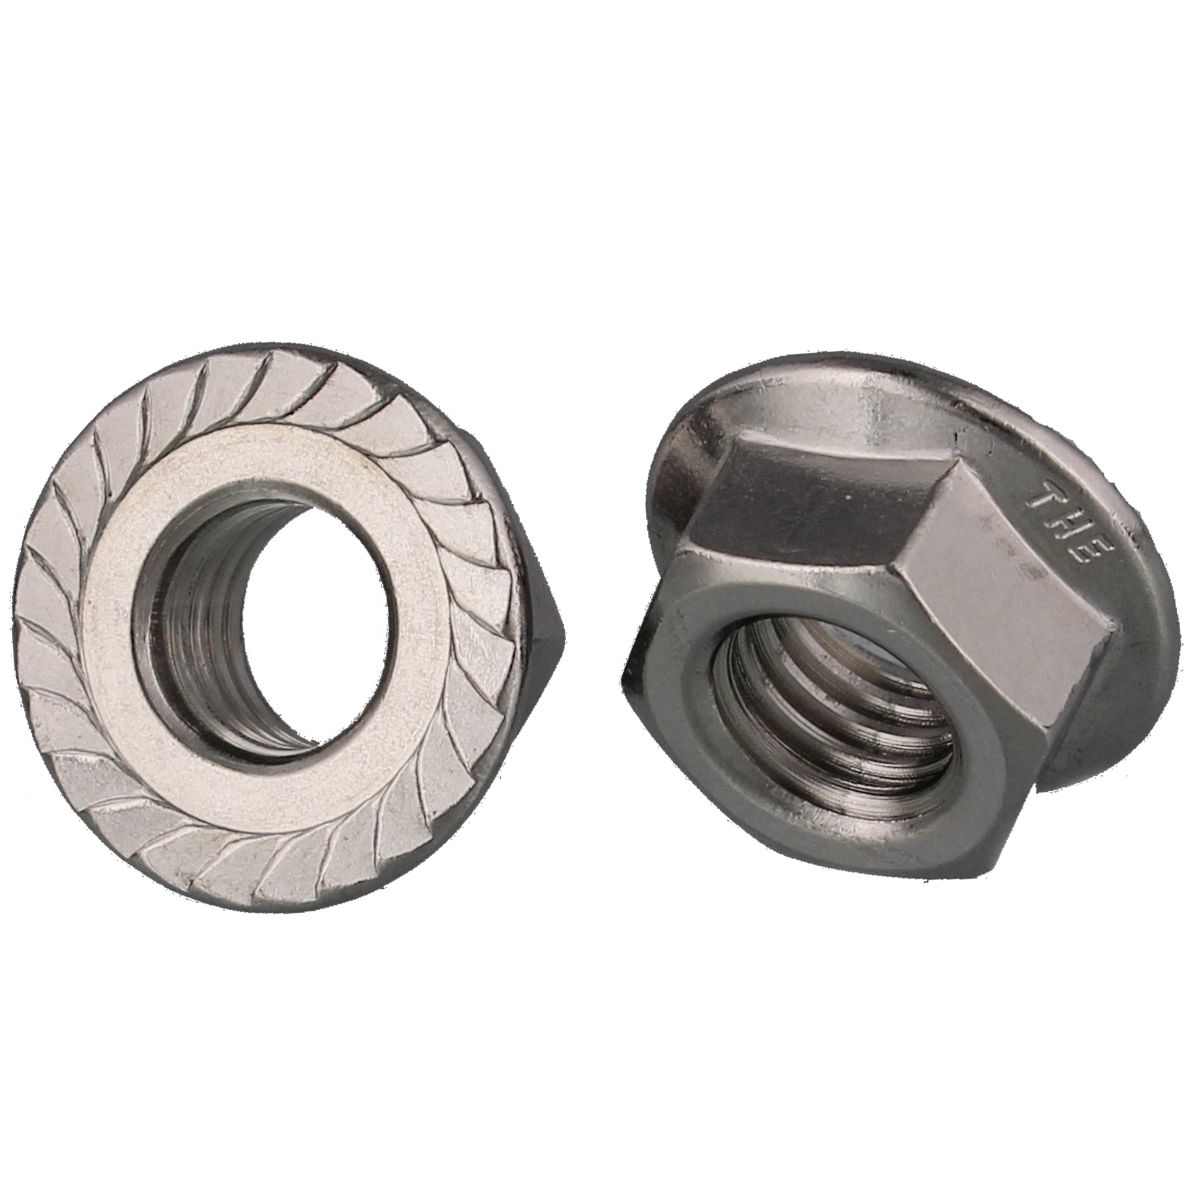 #10-24 Serrated Hex Flange Nuts — 18-8 Stainless Steel, Coarse, 100/PKG